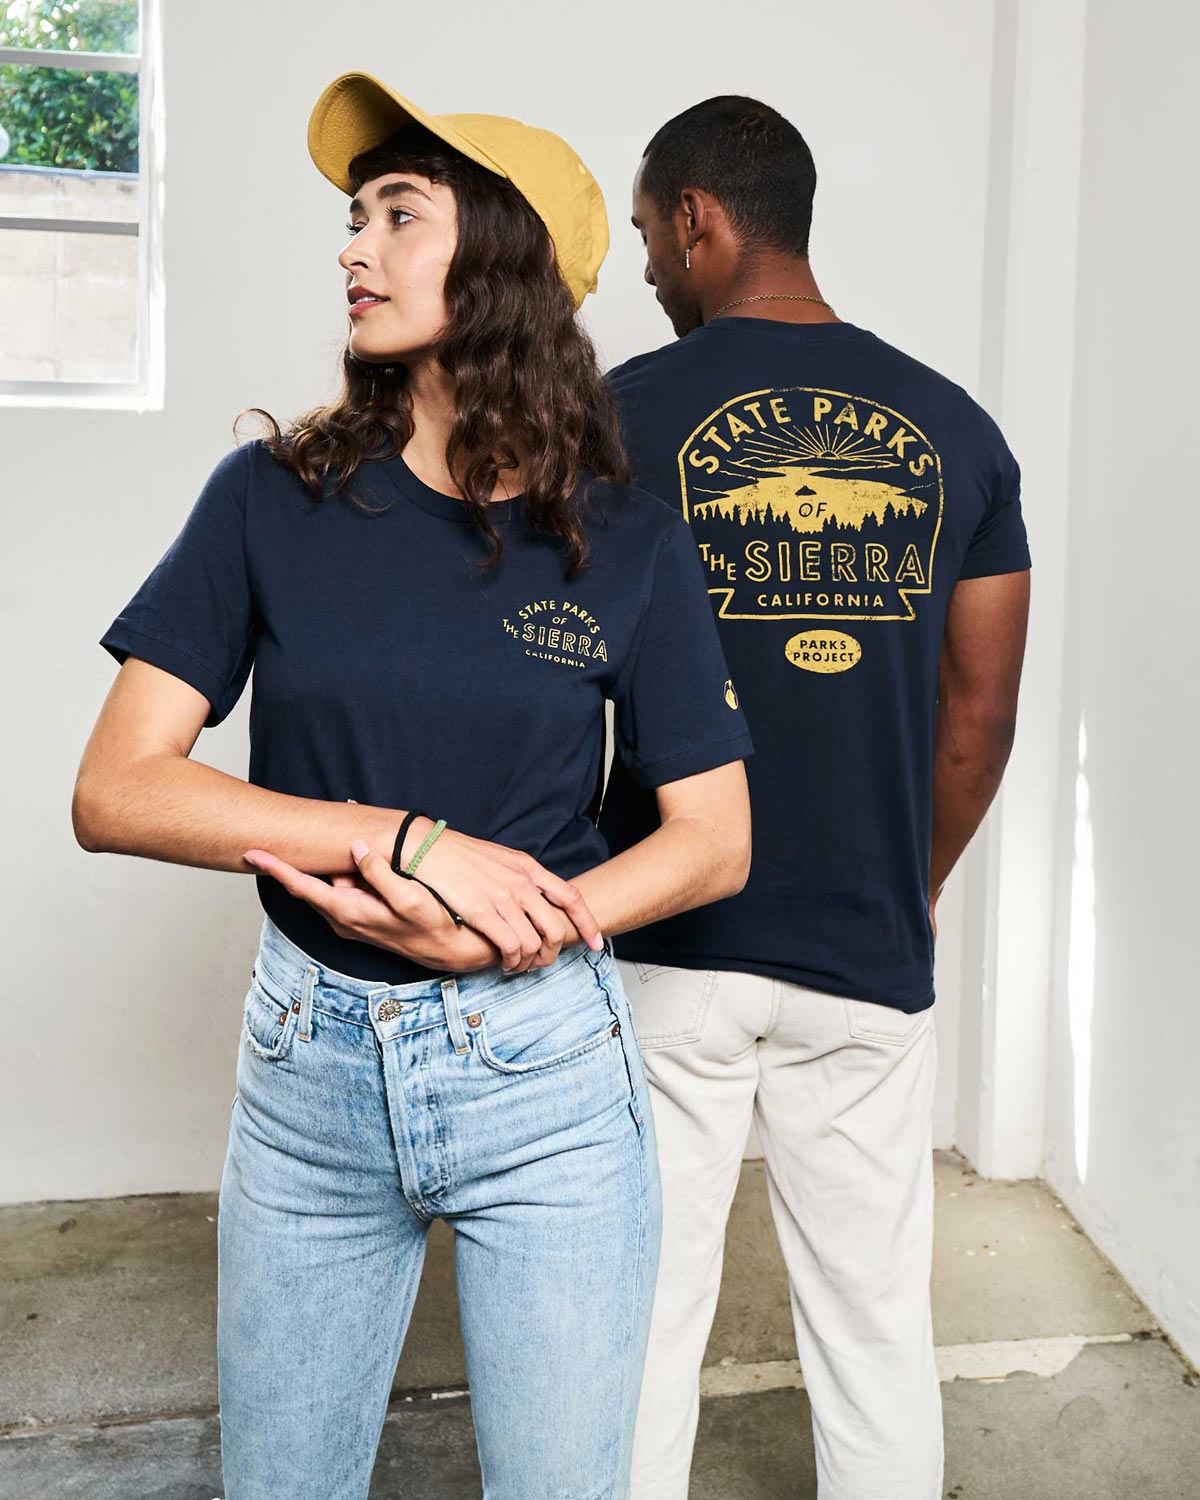 State Parks of the California Sierra Tee | Parks Project | State Parks of California Apparel